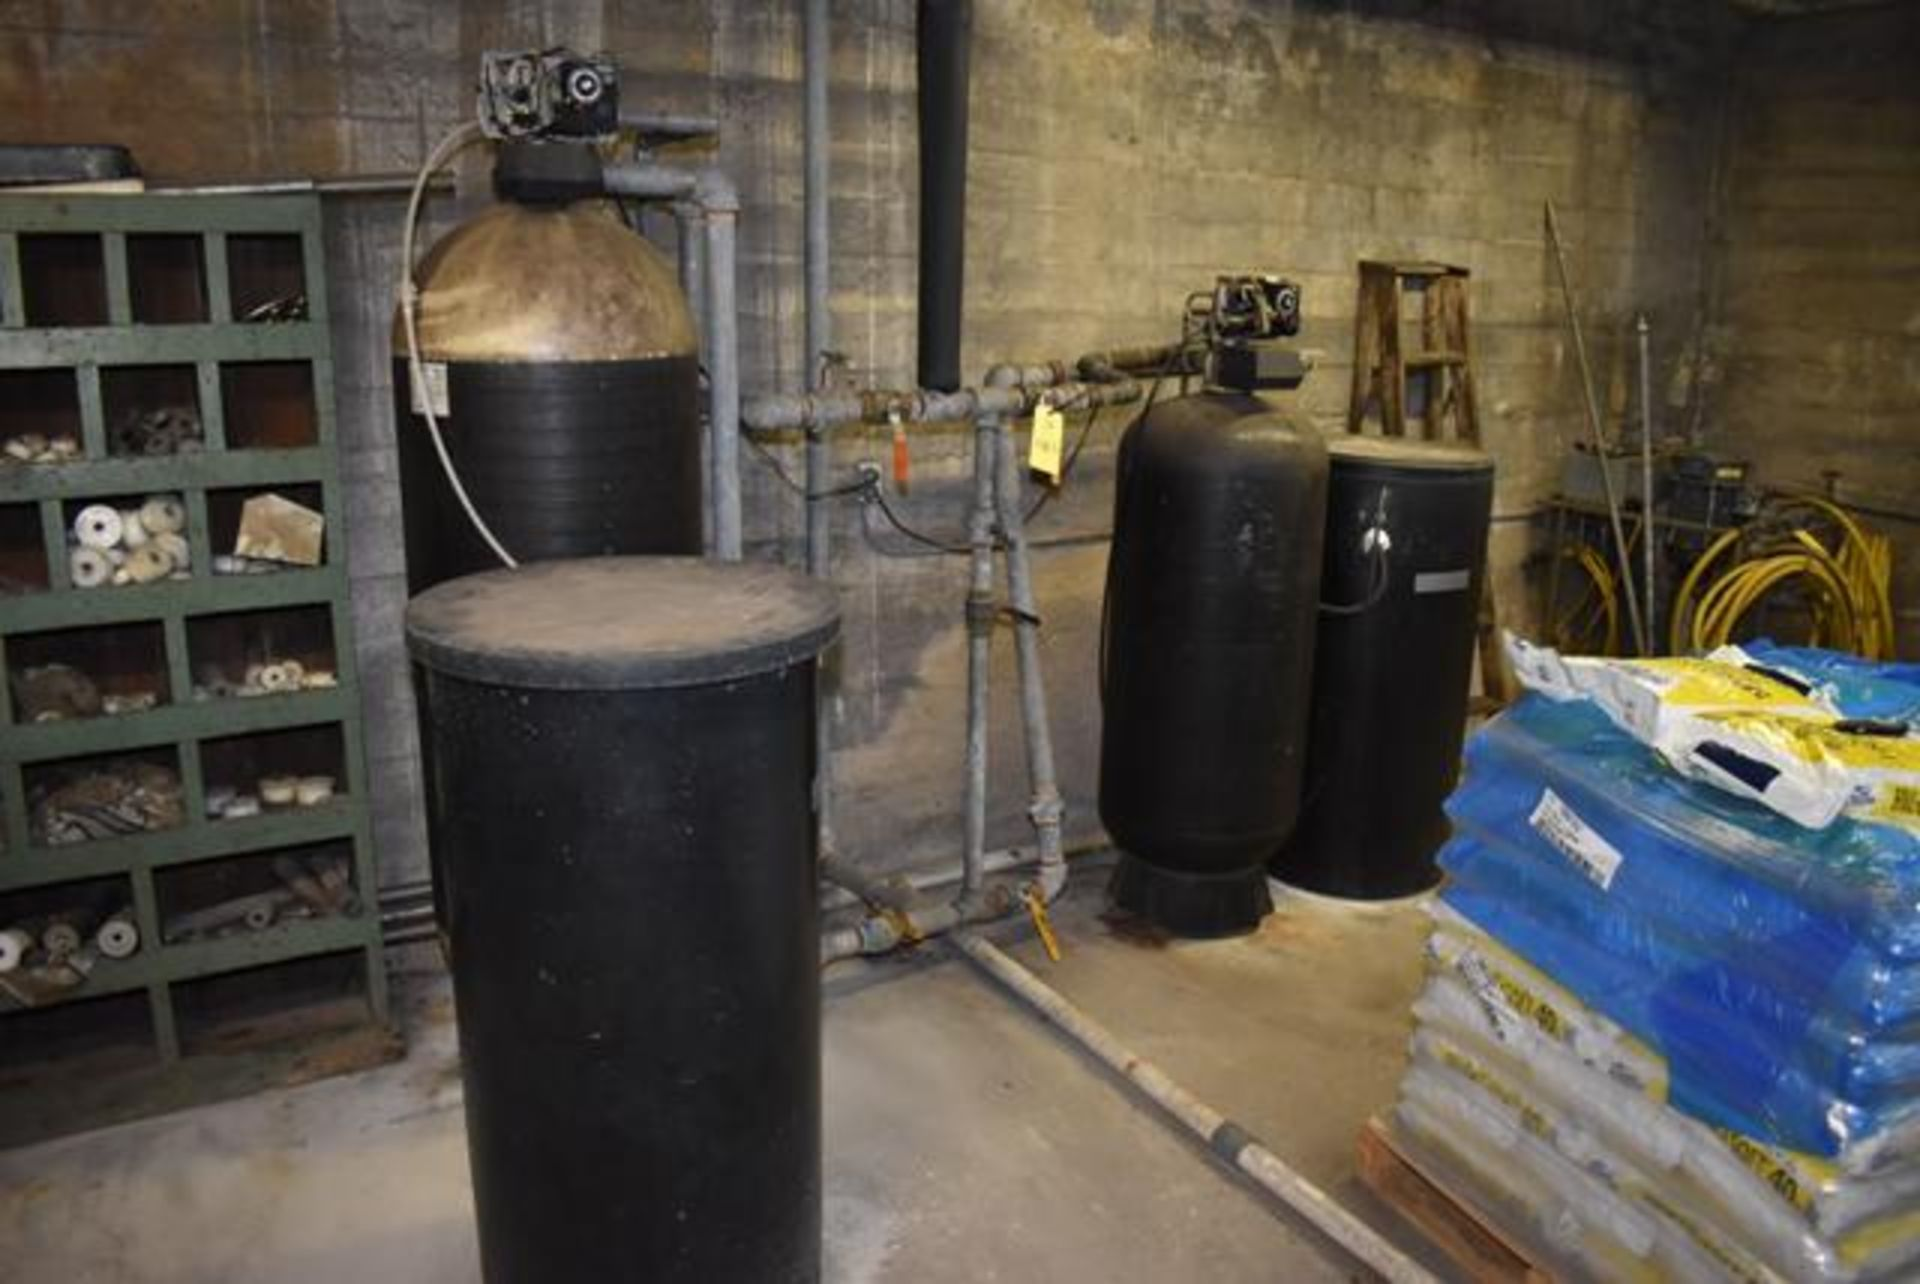 Lot 563 - Water Treatment System, Loading Fee: $1500